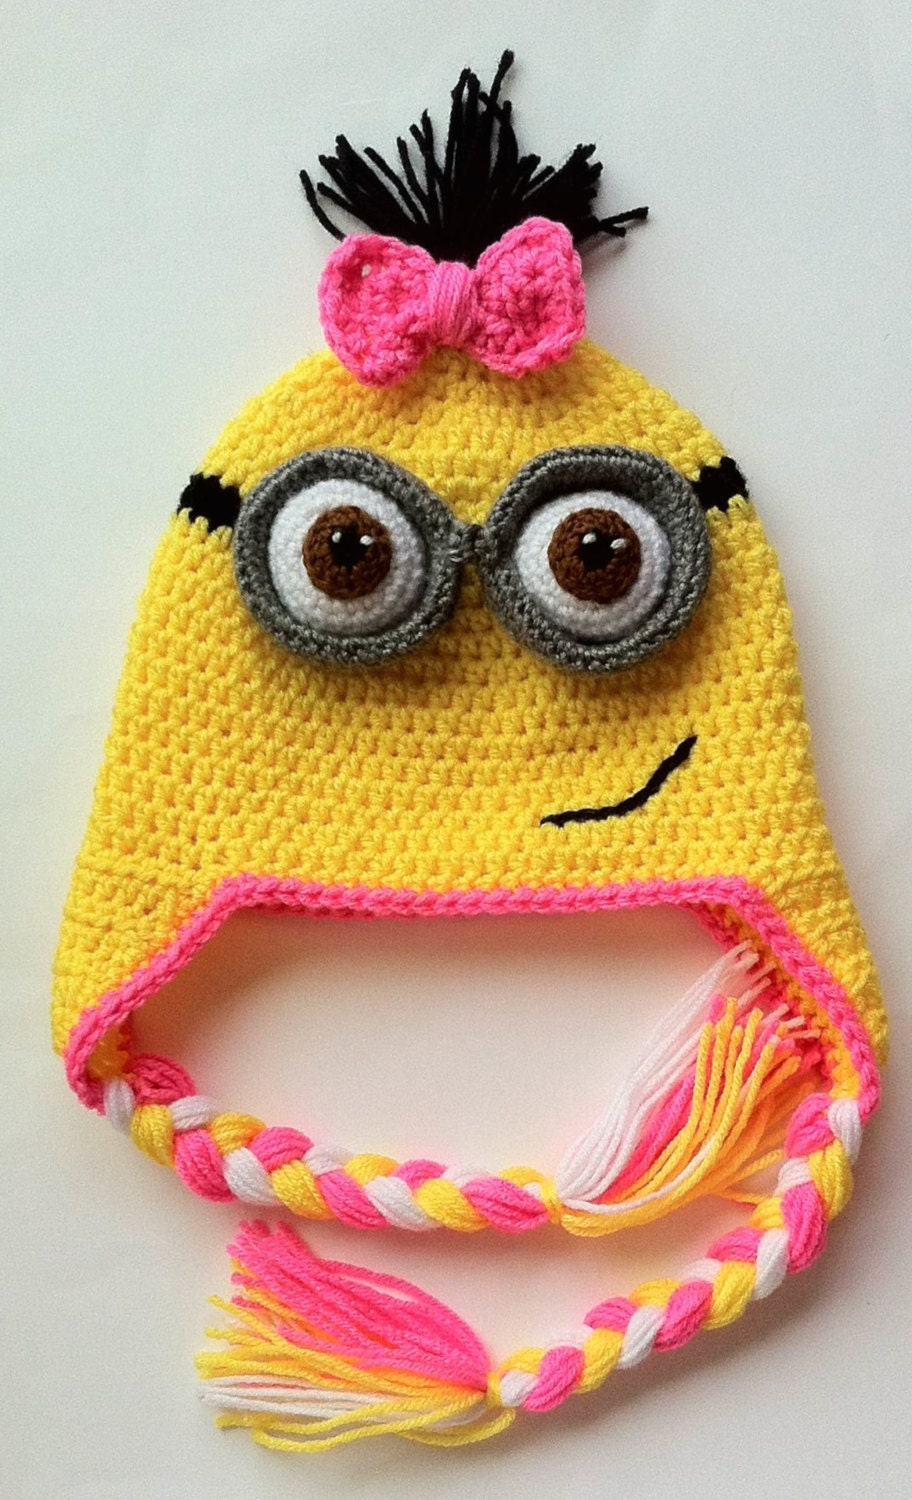 Free Crochet Pattern For Minion Hat With Ear Flaps : Despicable Me Girl Minion Inspired Hat Ear Flaps and Tassels